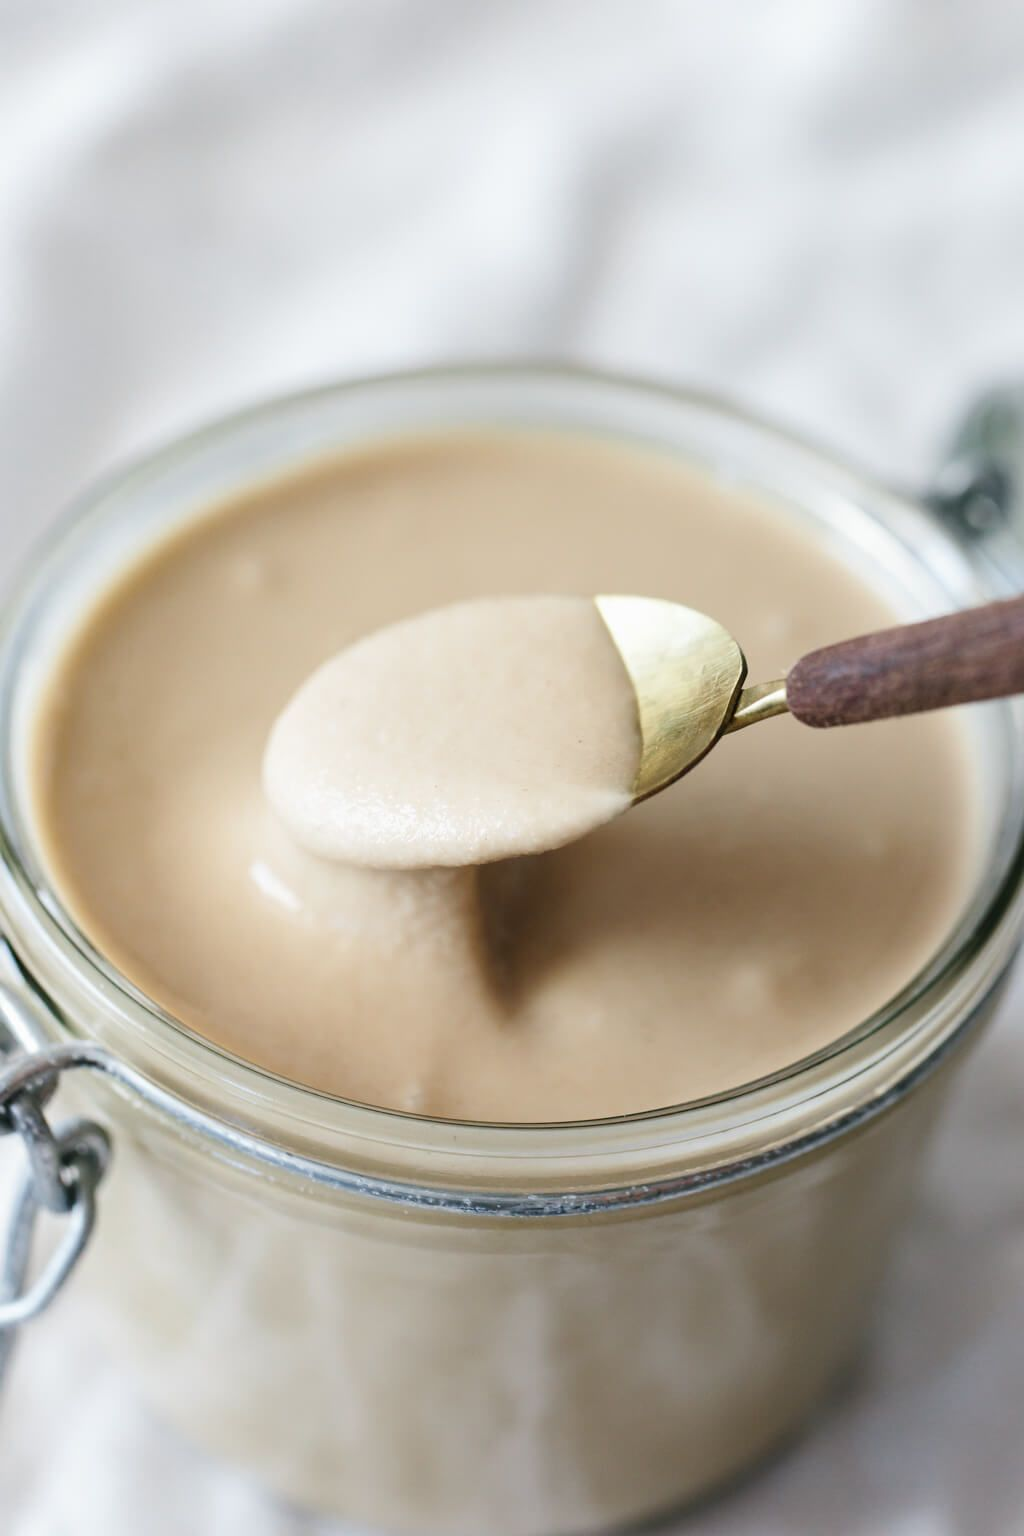 Recipe (Super Easy & Creamy!) Tahini is super easy to make at home and cheaper than buying in the store. But I have a few tips for the creamiest, best tahini recipe.Tahini is super easy to make at home and cheaper than buying in the store. But I have a few tips for the creamiest, best tahini recipe.